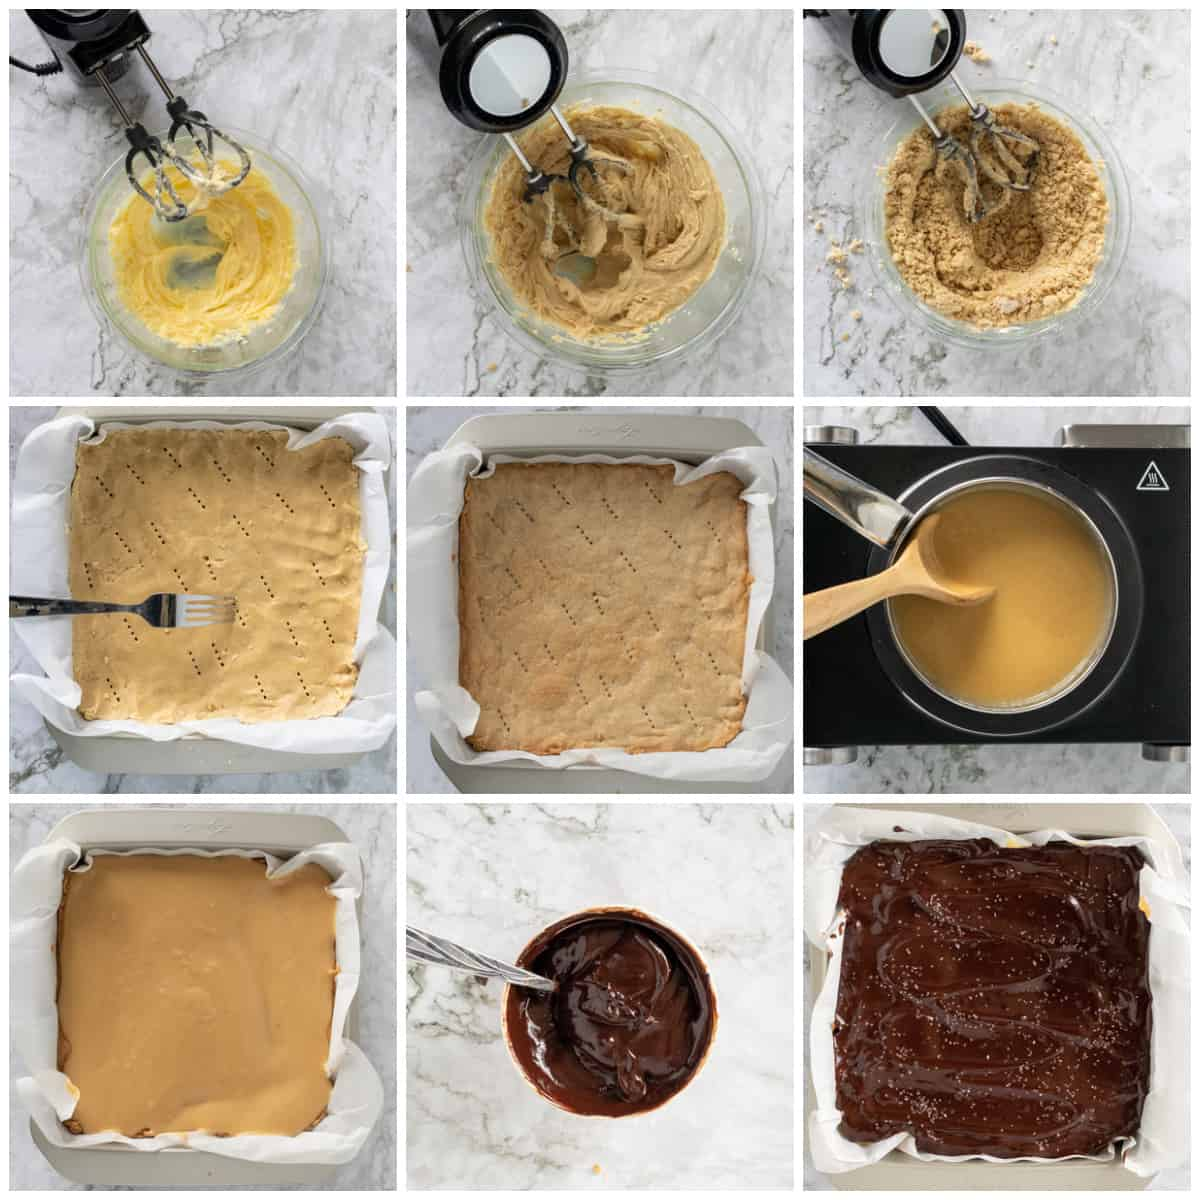 Step by step photos on how to make Millionaire Shortbread Bars